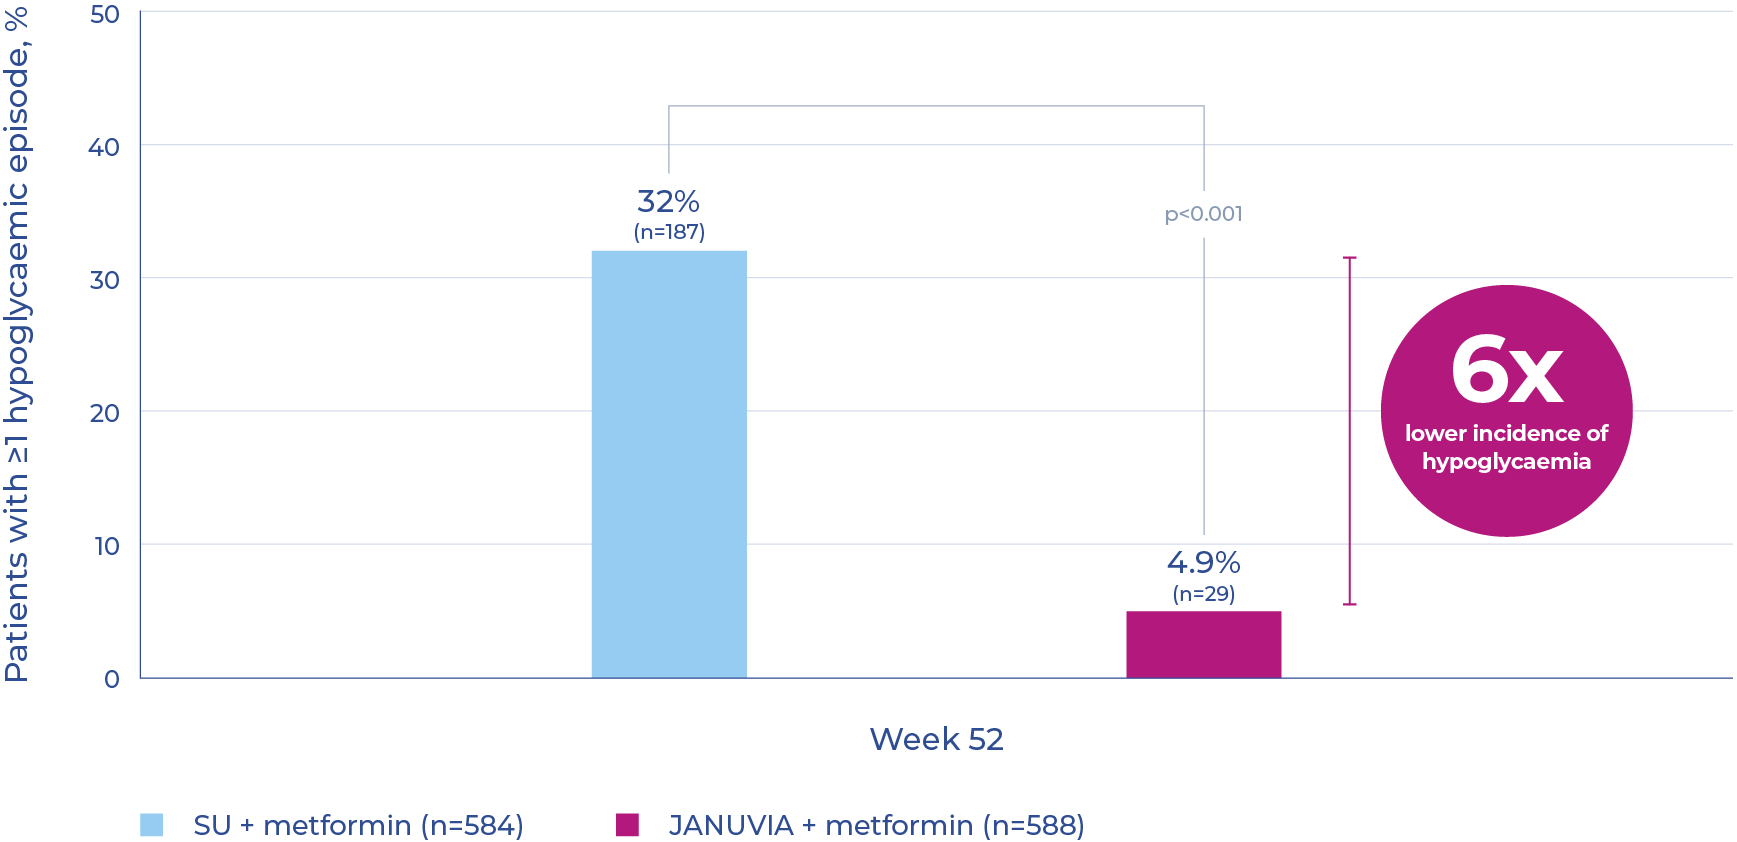 Graph showing percentage of patients with hypoglycaemic events with JANUVIA plus metformin versus SU plus metformin